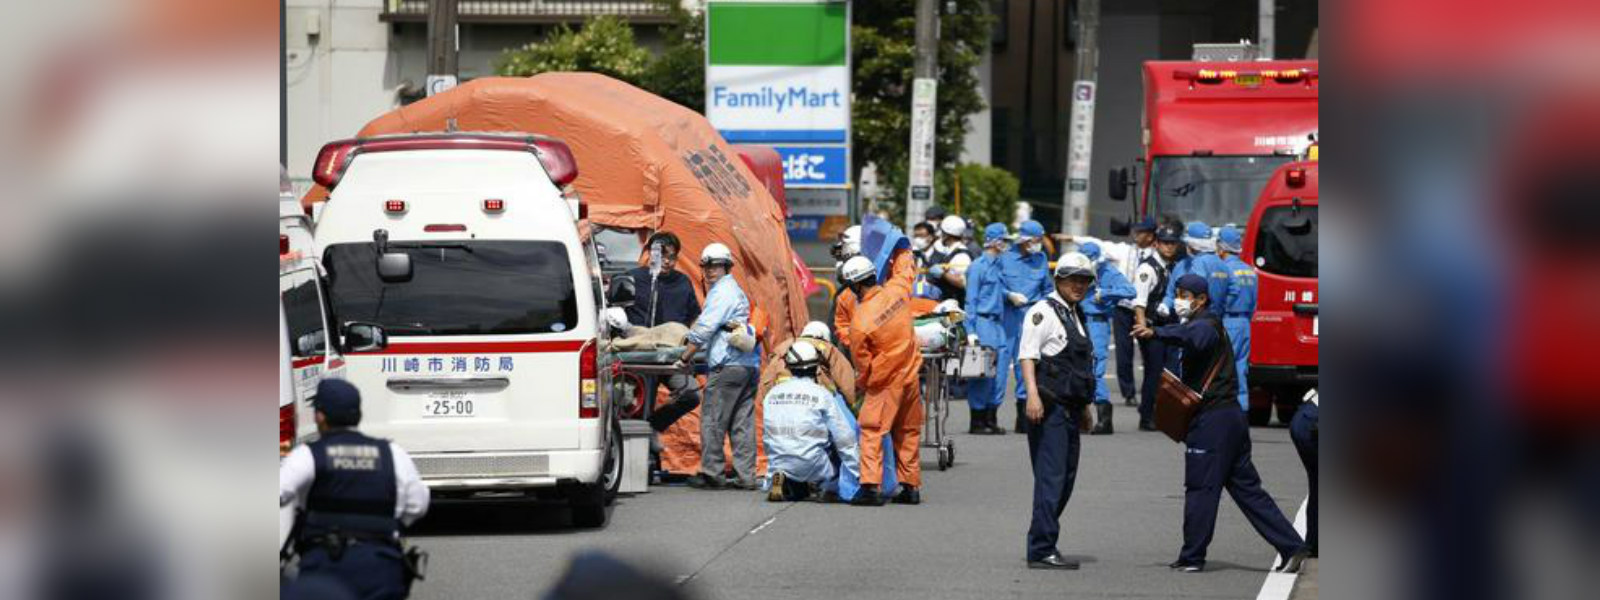 Two killed, 15 school girls injured in Japan stabbing -NHK